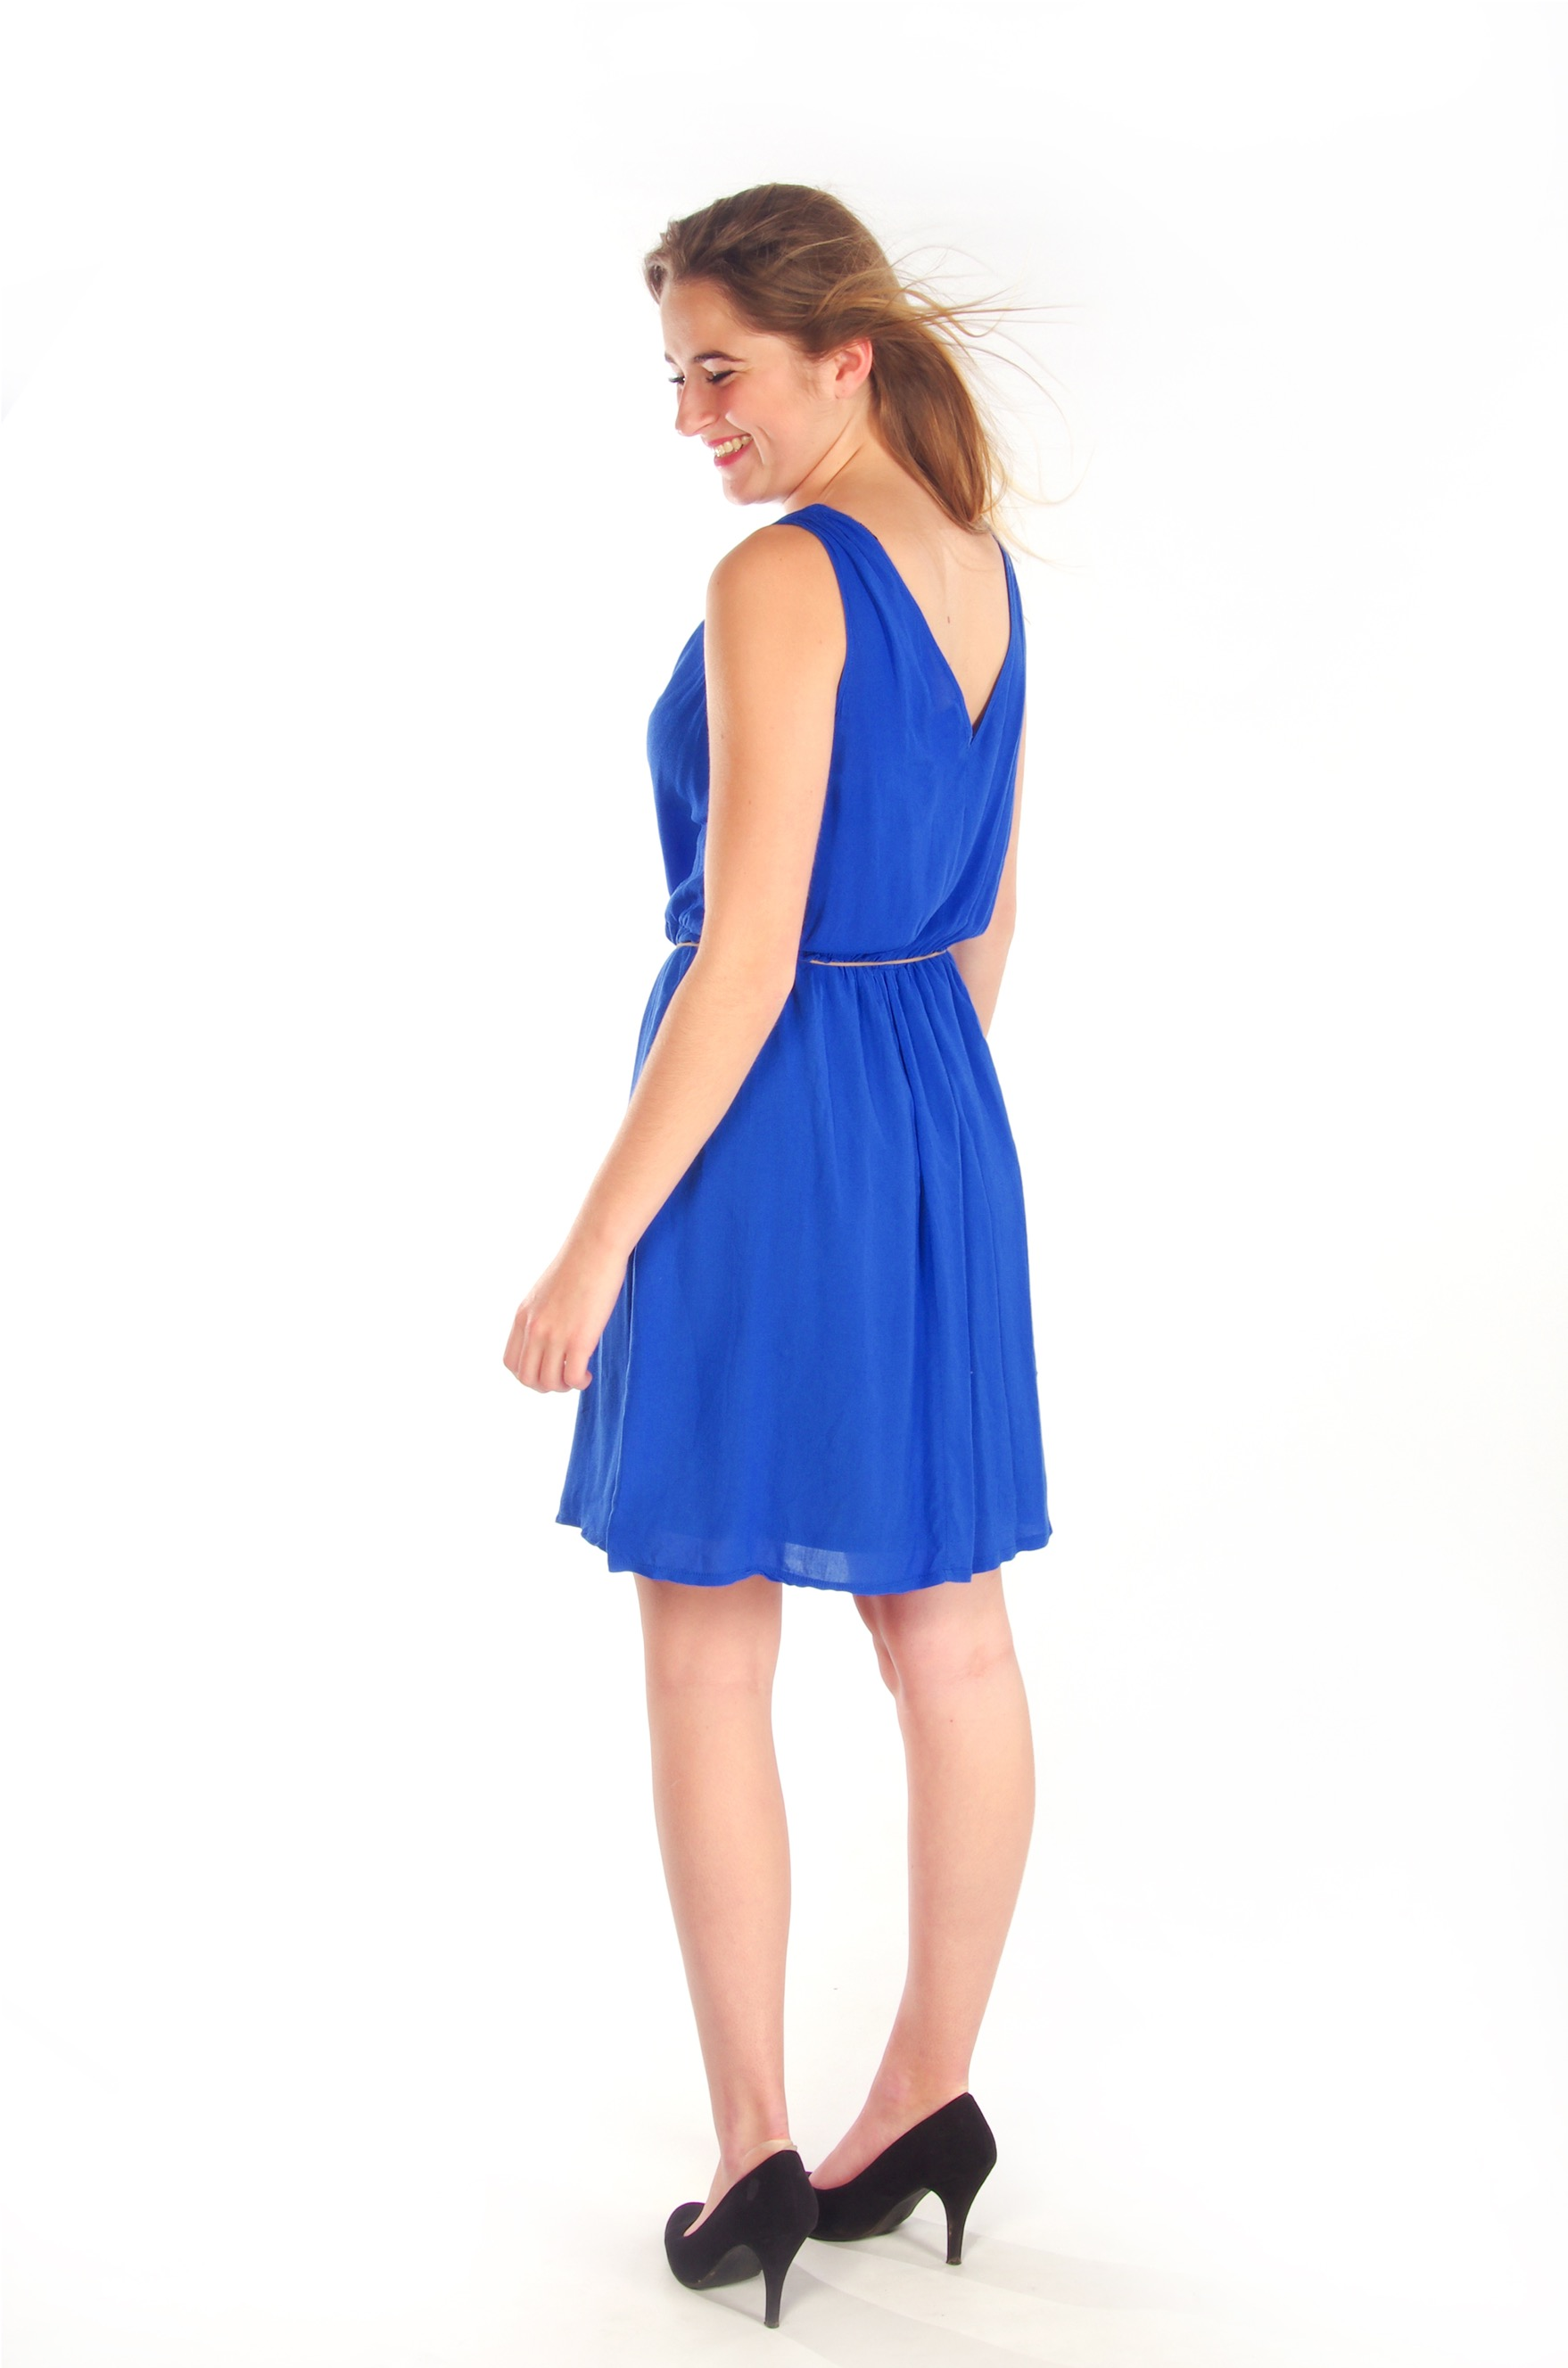 Robe Bleue Adress Collection